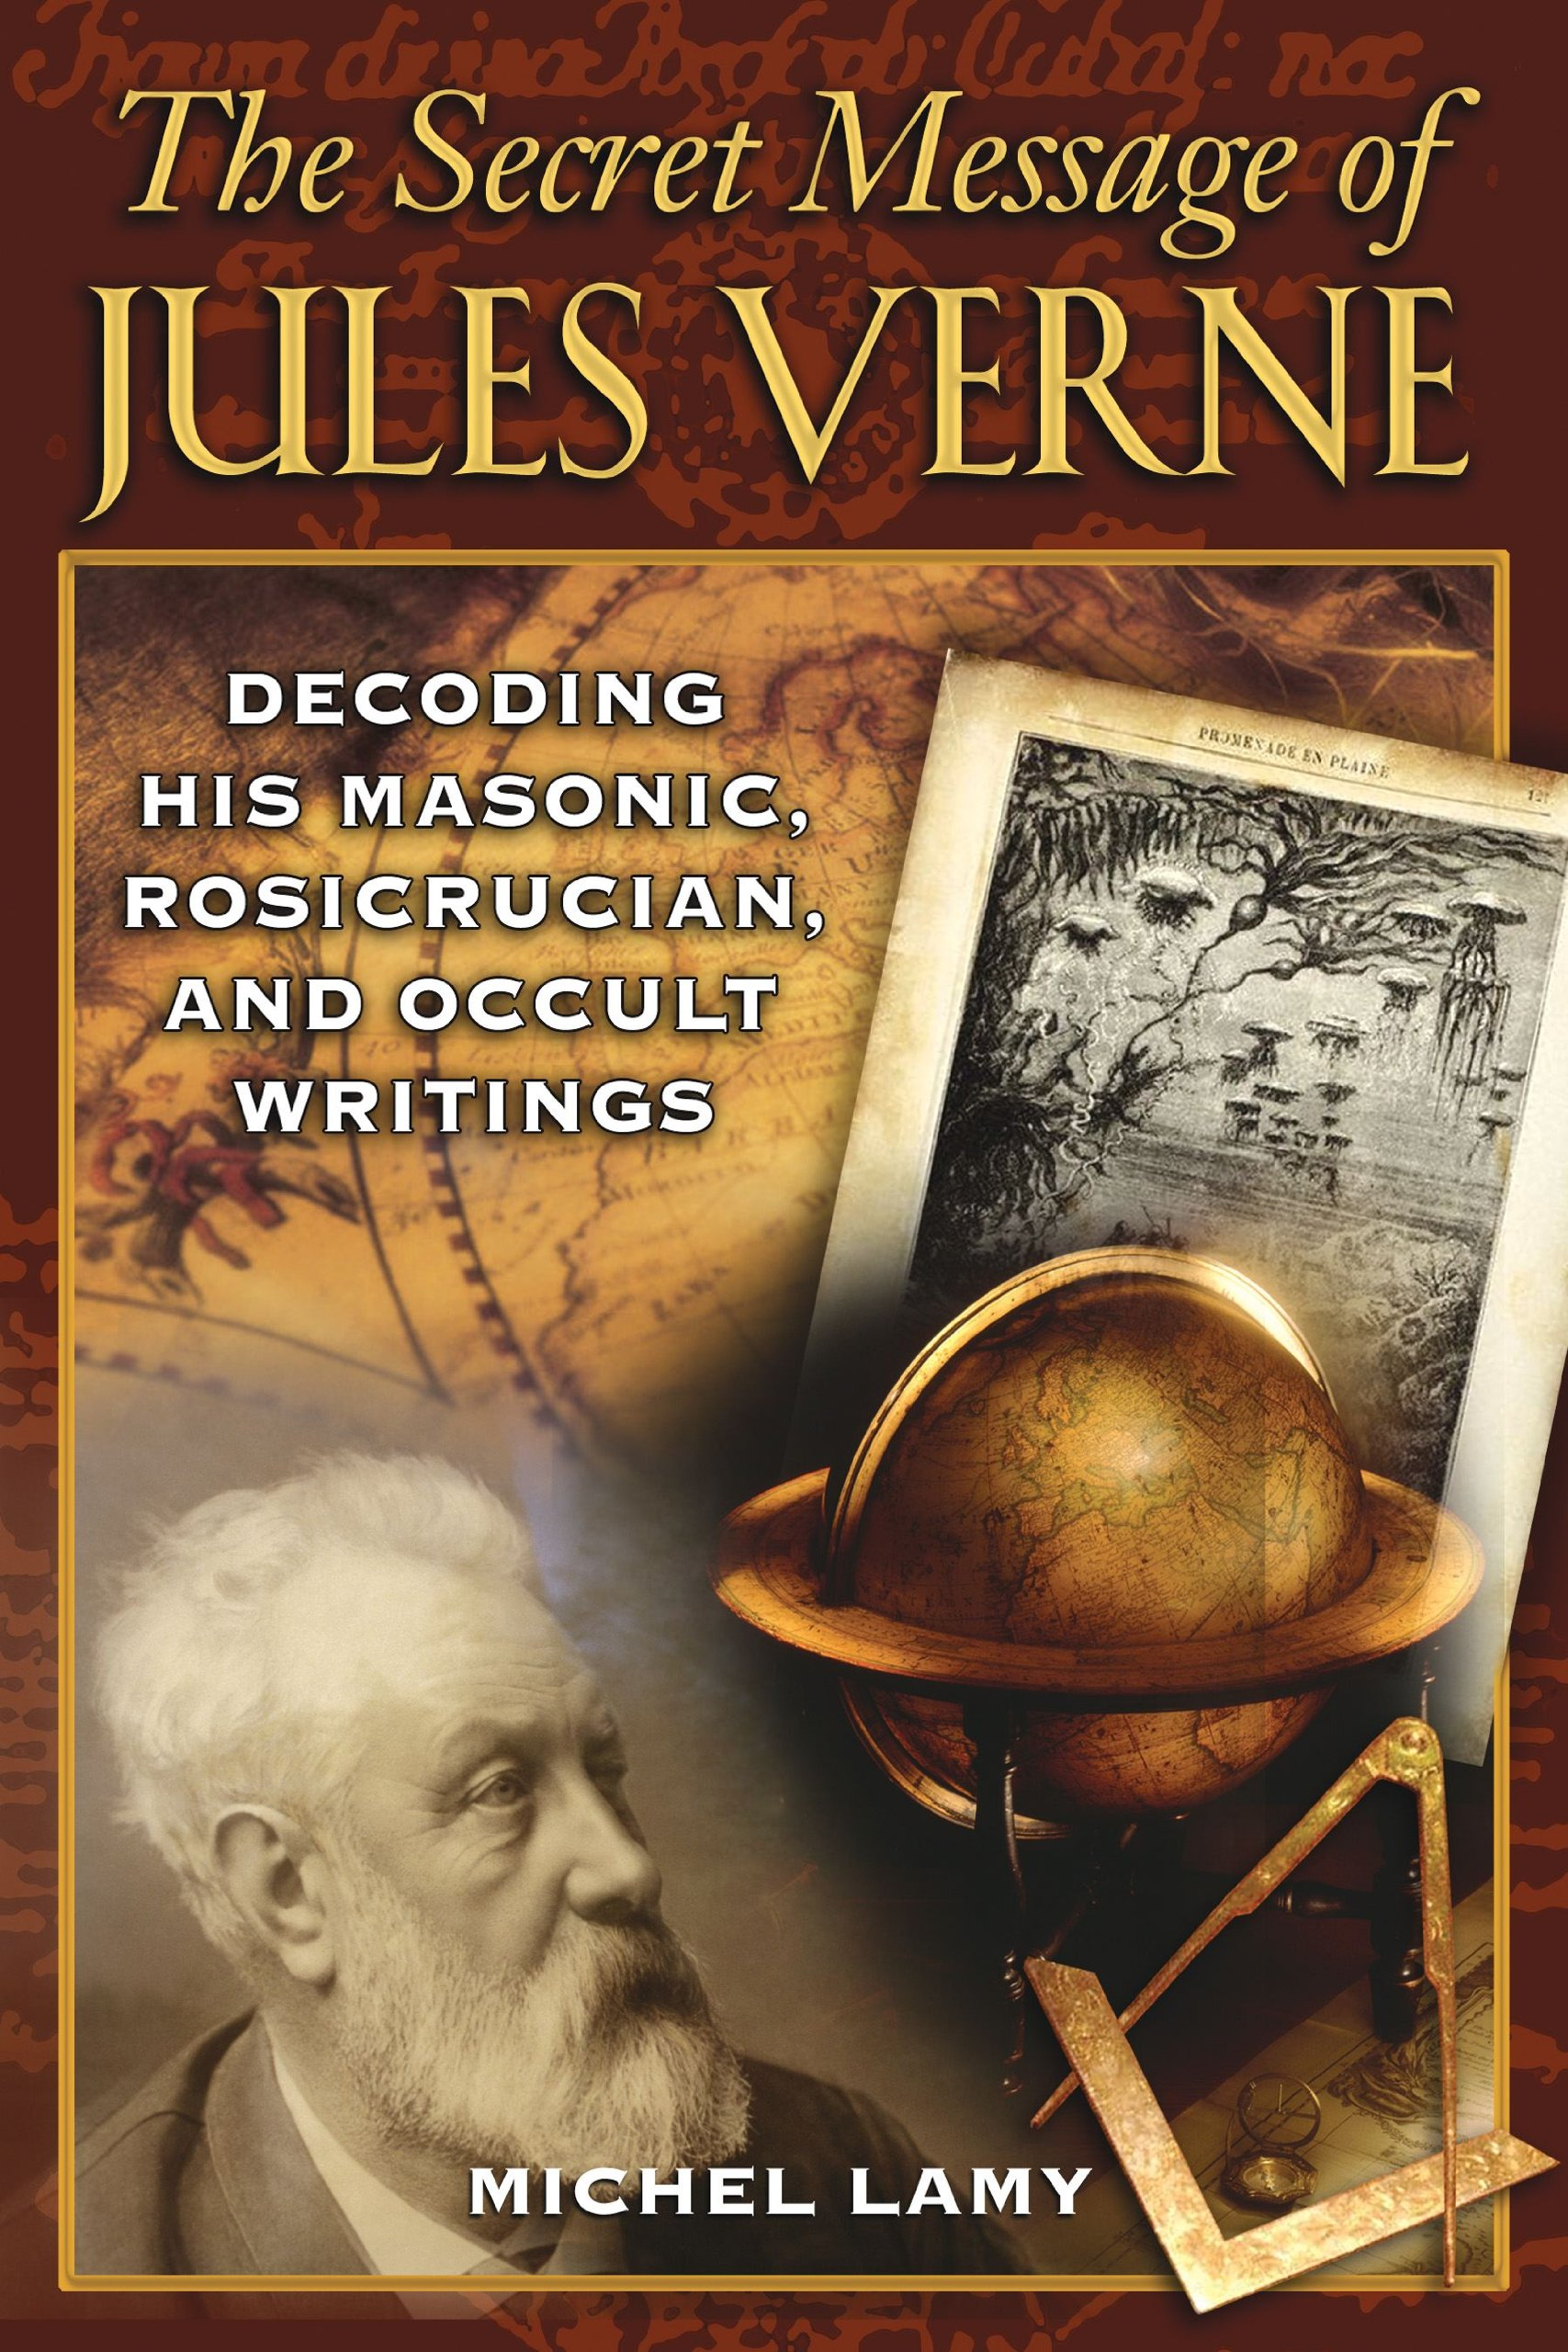 The Secret Message of Jules Verne: Decoding His Masonic Rosicrucian and Occult Writings